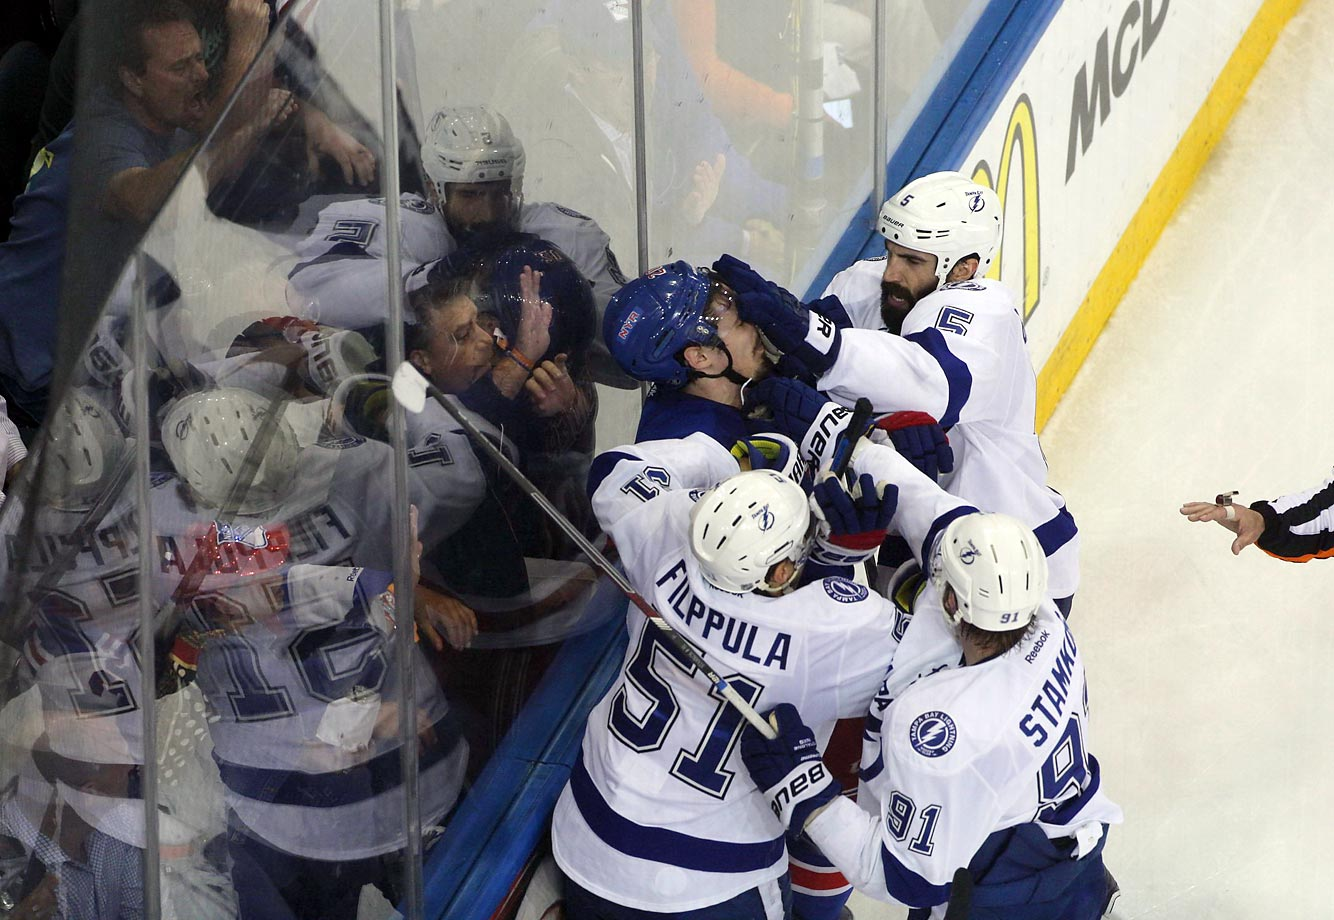 In the end, the Tampa Bay Lightning won Game 7 of the Eastern Conference final.